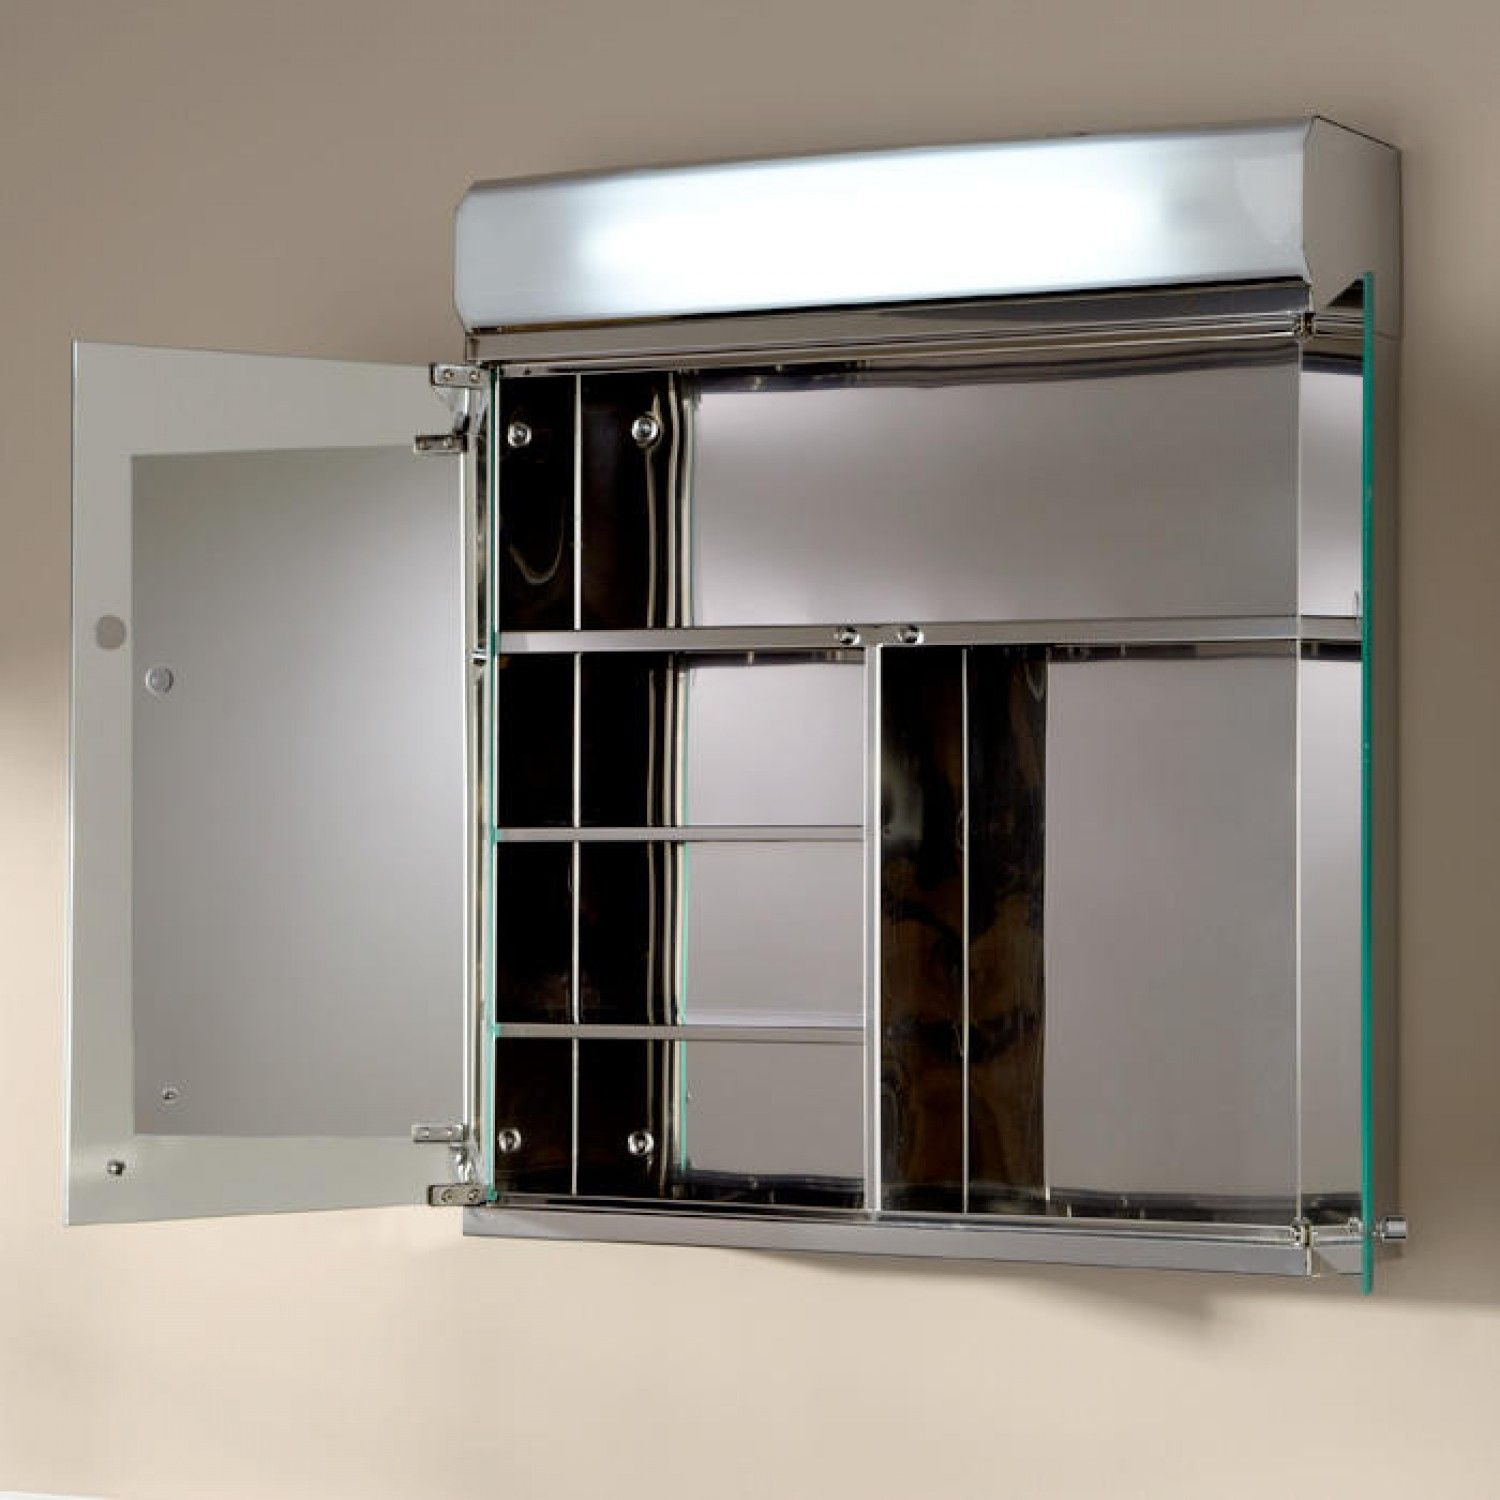 lighted bathroom medicine cabinet delview stainless steel medicine cabinet with lighted 19257